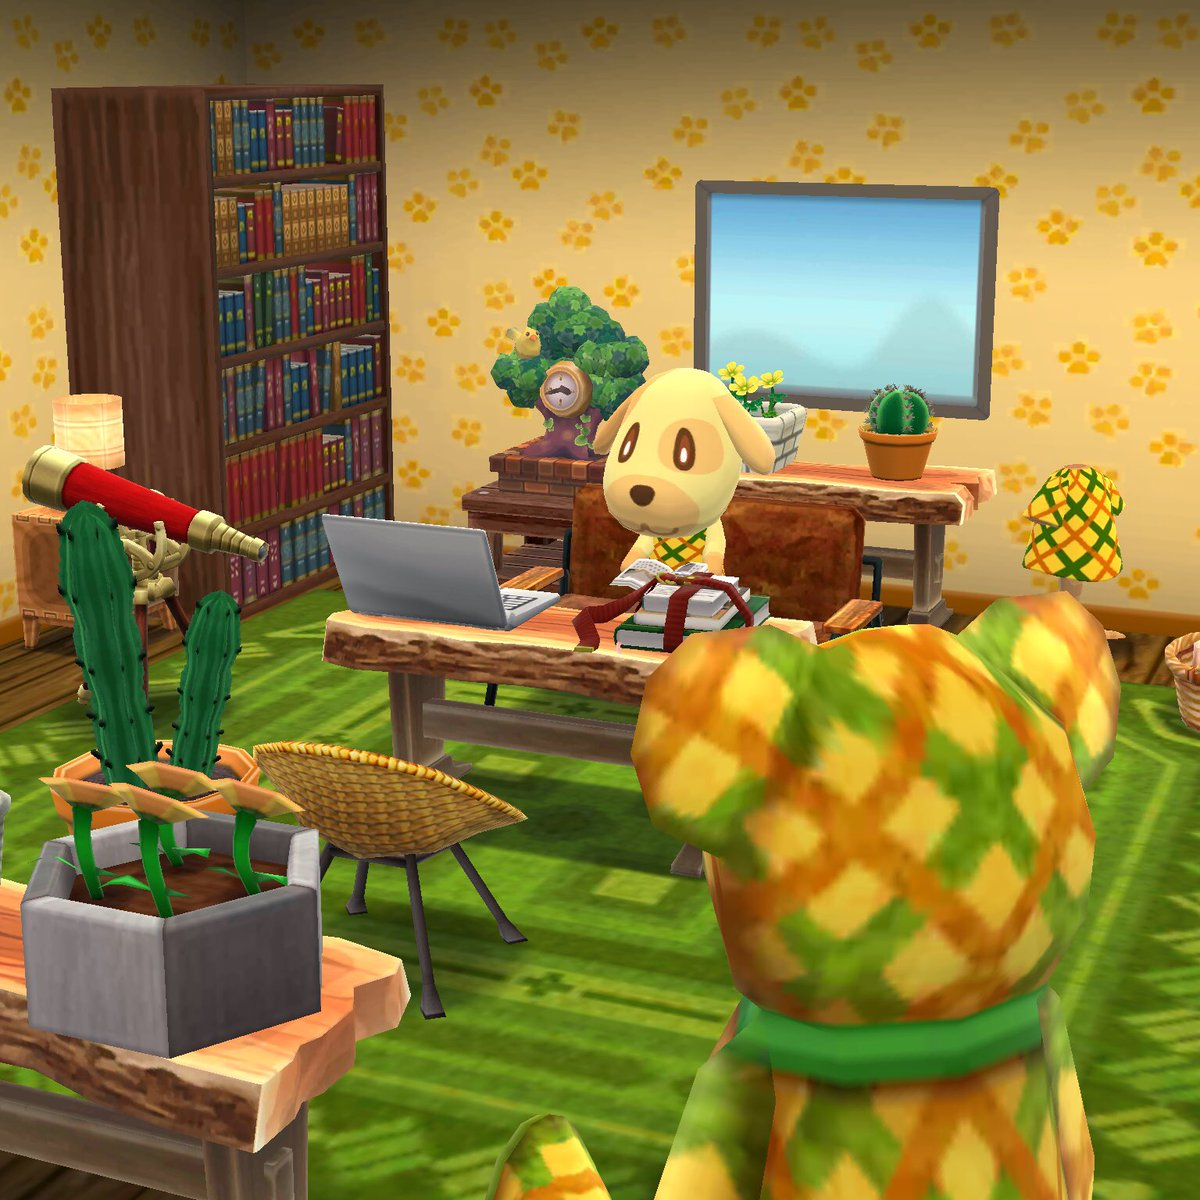 #GoldiesRoom Goldie loves to read as much as I do, so I had to design her room with lots of books!  <br>http://pic.twitter.com/NRks56stbu